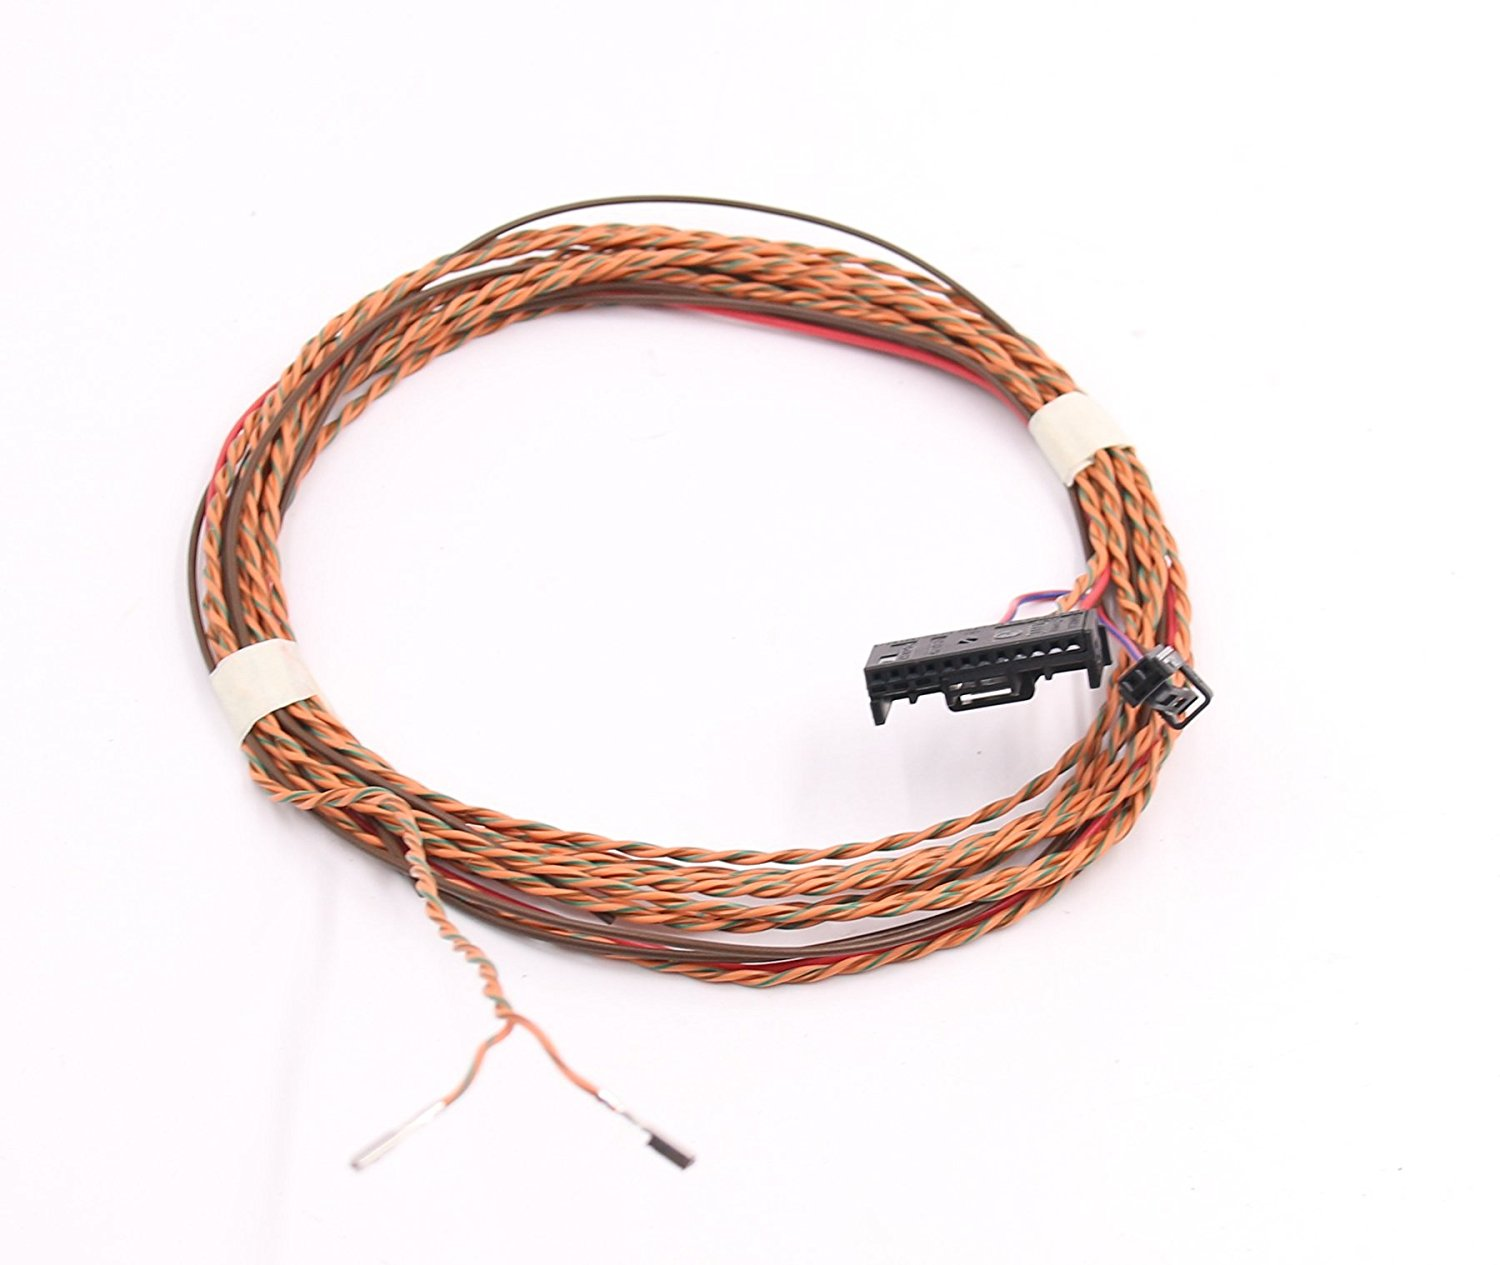 Cheap V W Speedomter Cable For Passat 88 357957803a Find Wiring Harness Vw Phaeton Get Quotations Lane Assist Keeping System Wire B7 Cc